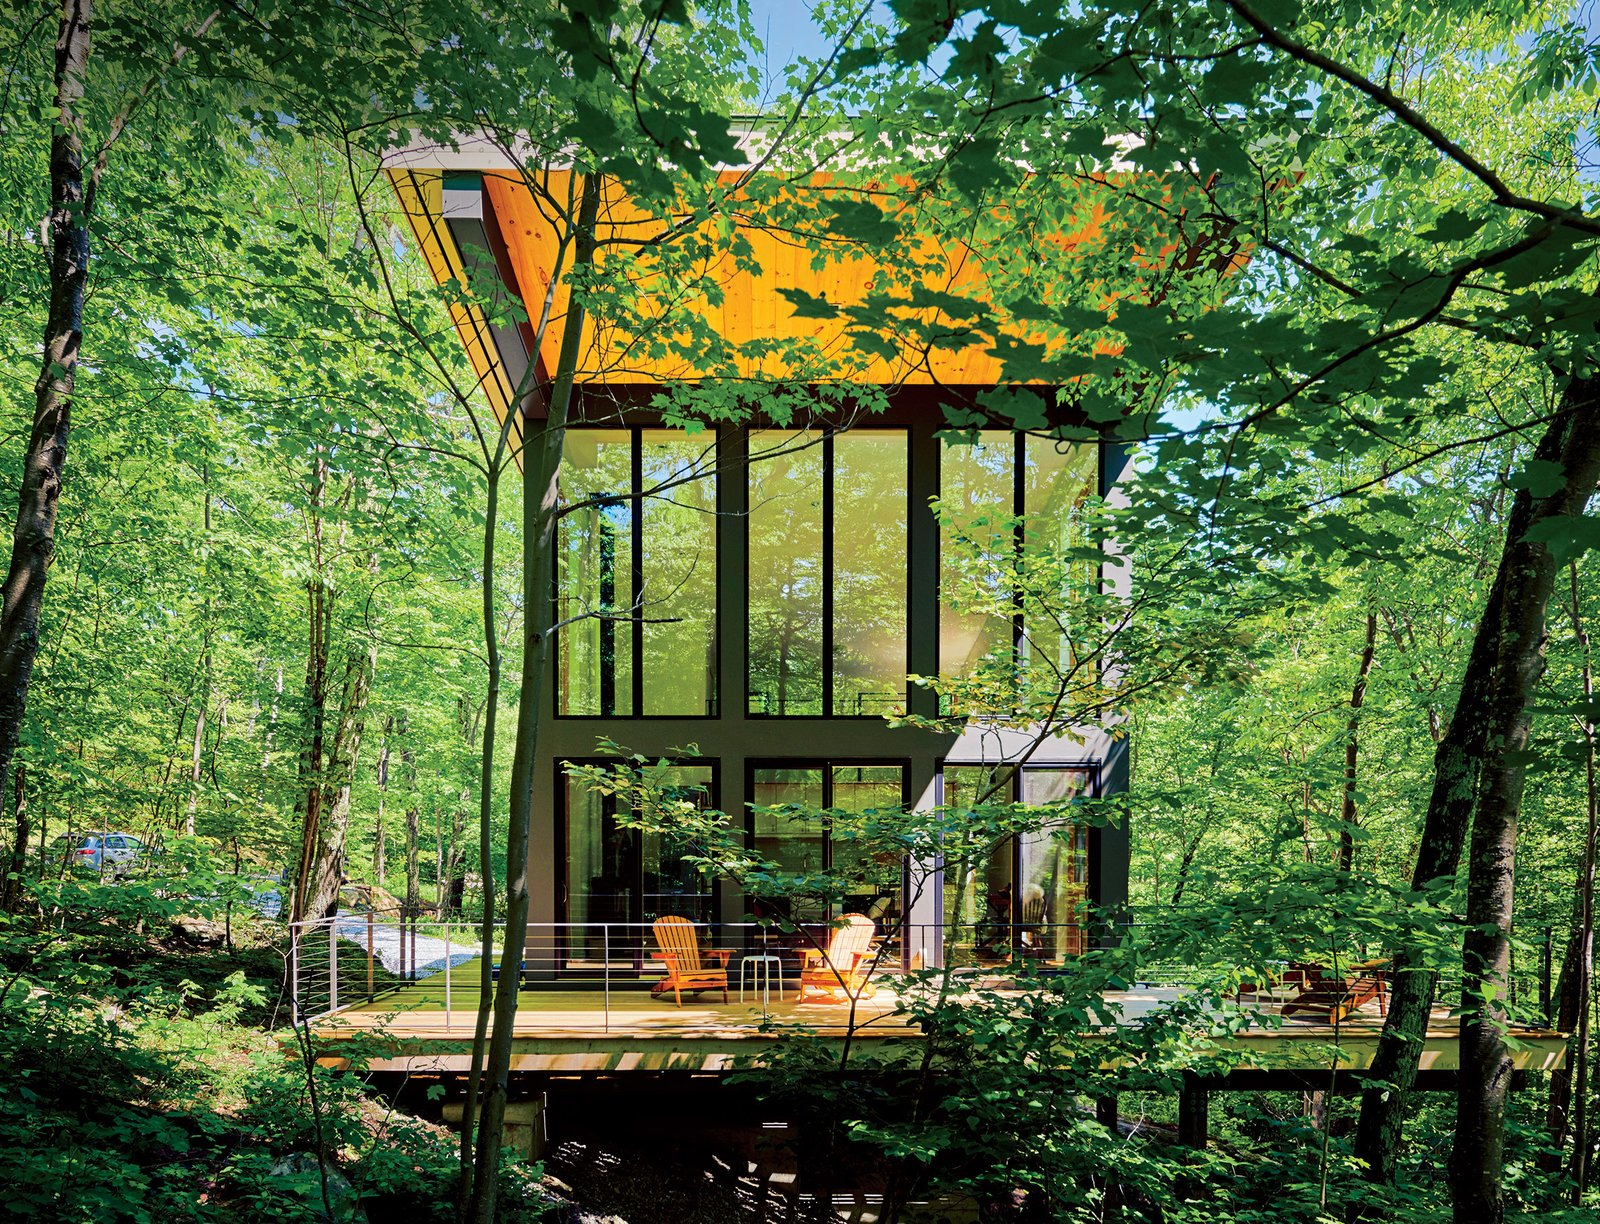 """Exterior and House Building Type A cantilevered cabin designed by R D Gentzler blends into the forest, even as it hovers above a 20-foot drop-off. Its south face is almost entirely glass, but a roof canopy limits solar gain. """"We sit on the deck all afternoon watching the trees, and the time just flies by,"""" says resident Maricela Salas.  Modern, Off-the-Grid Homes by Aileen Kwun from A Little Cabin Reaches Such Great Heights"""